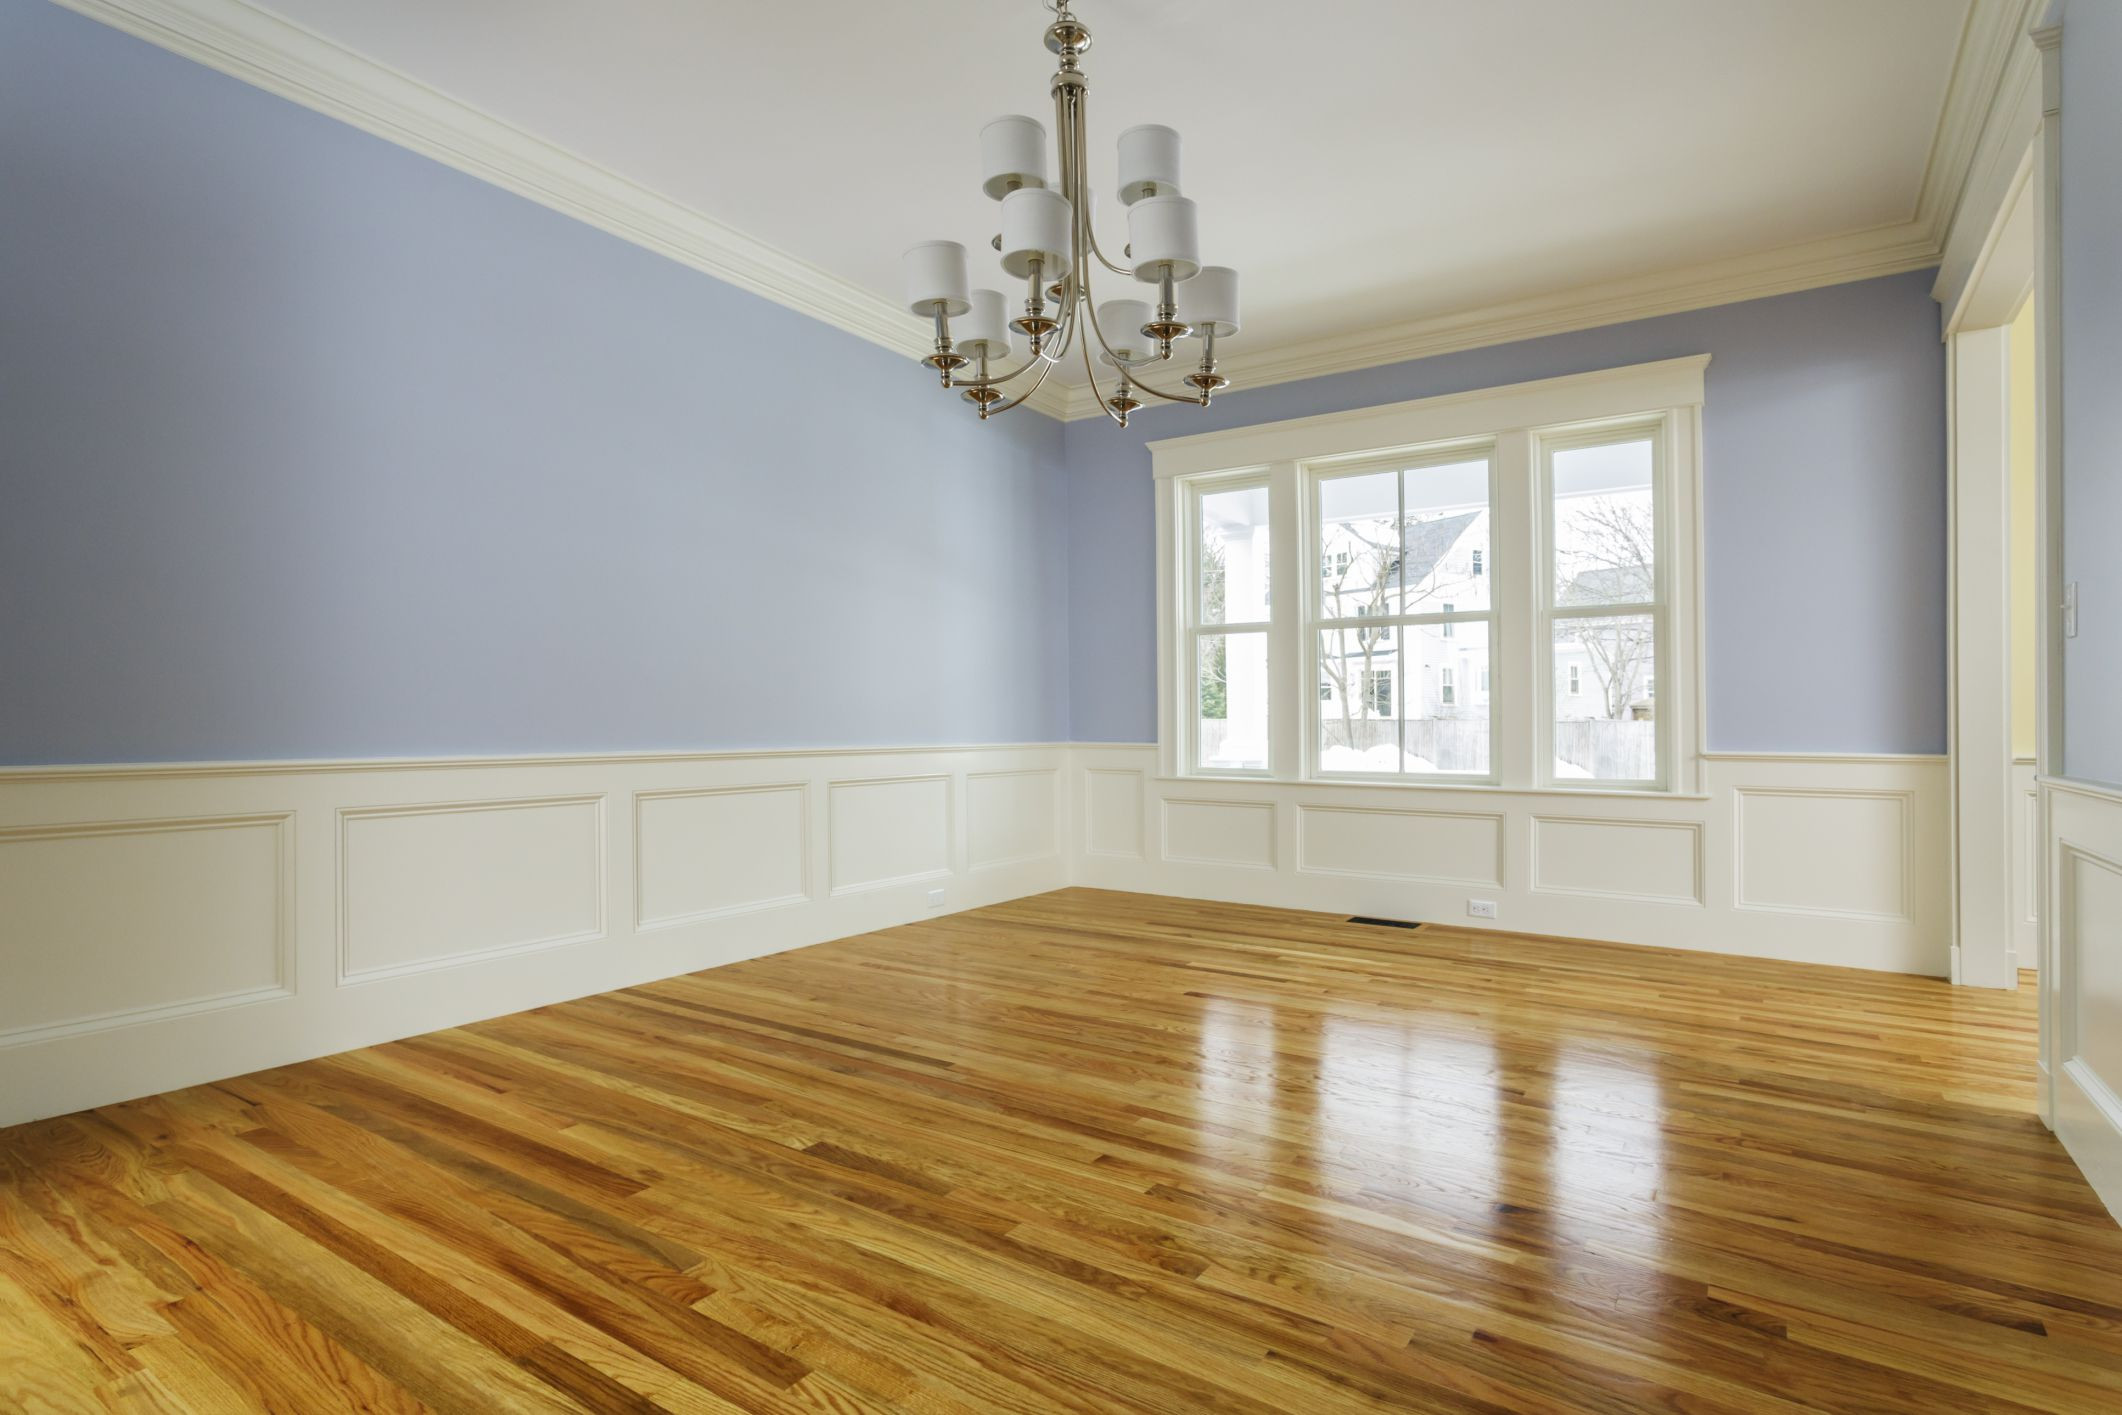 cleaning engineered hardwood floors with vinegar and water of how to make hardwood floors shiny in 168686572 56a4e87c3df78cf7728544a2